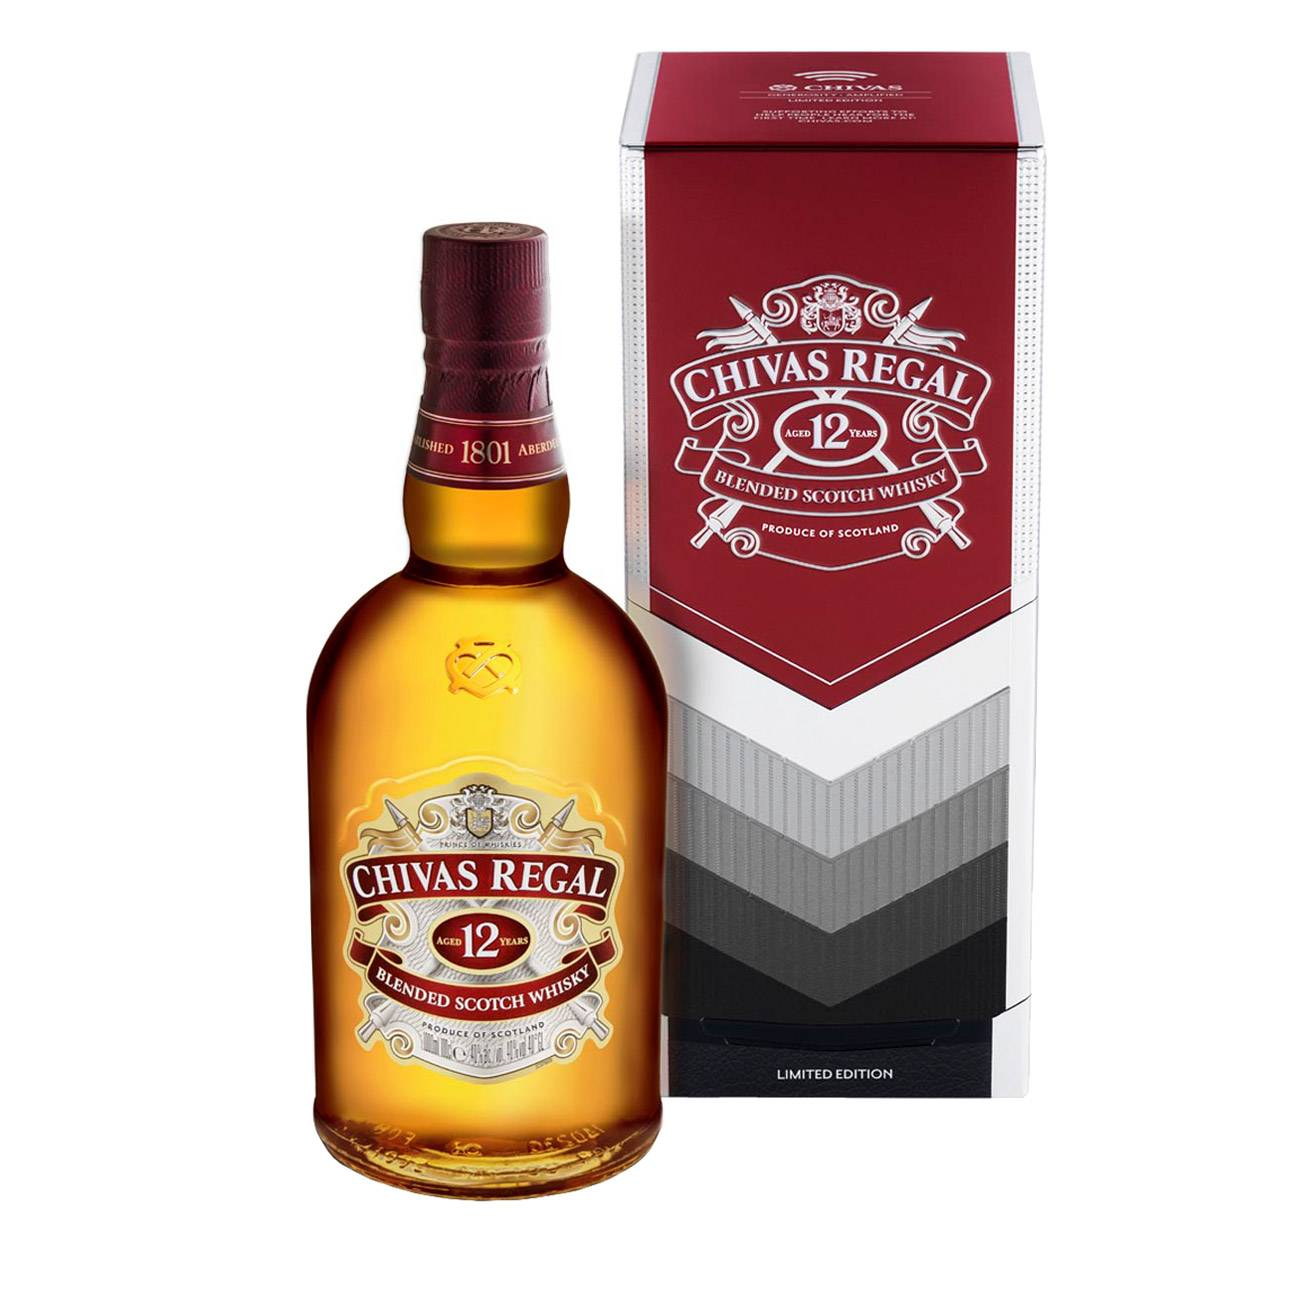 BLENDED SCOTCH 12 YEARS OLD LIMITED EDITION 1000 Ml